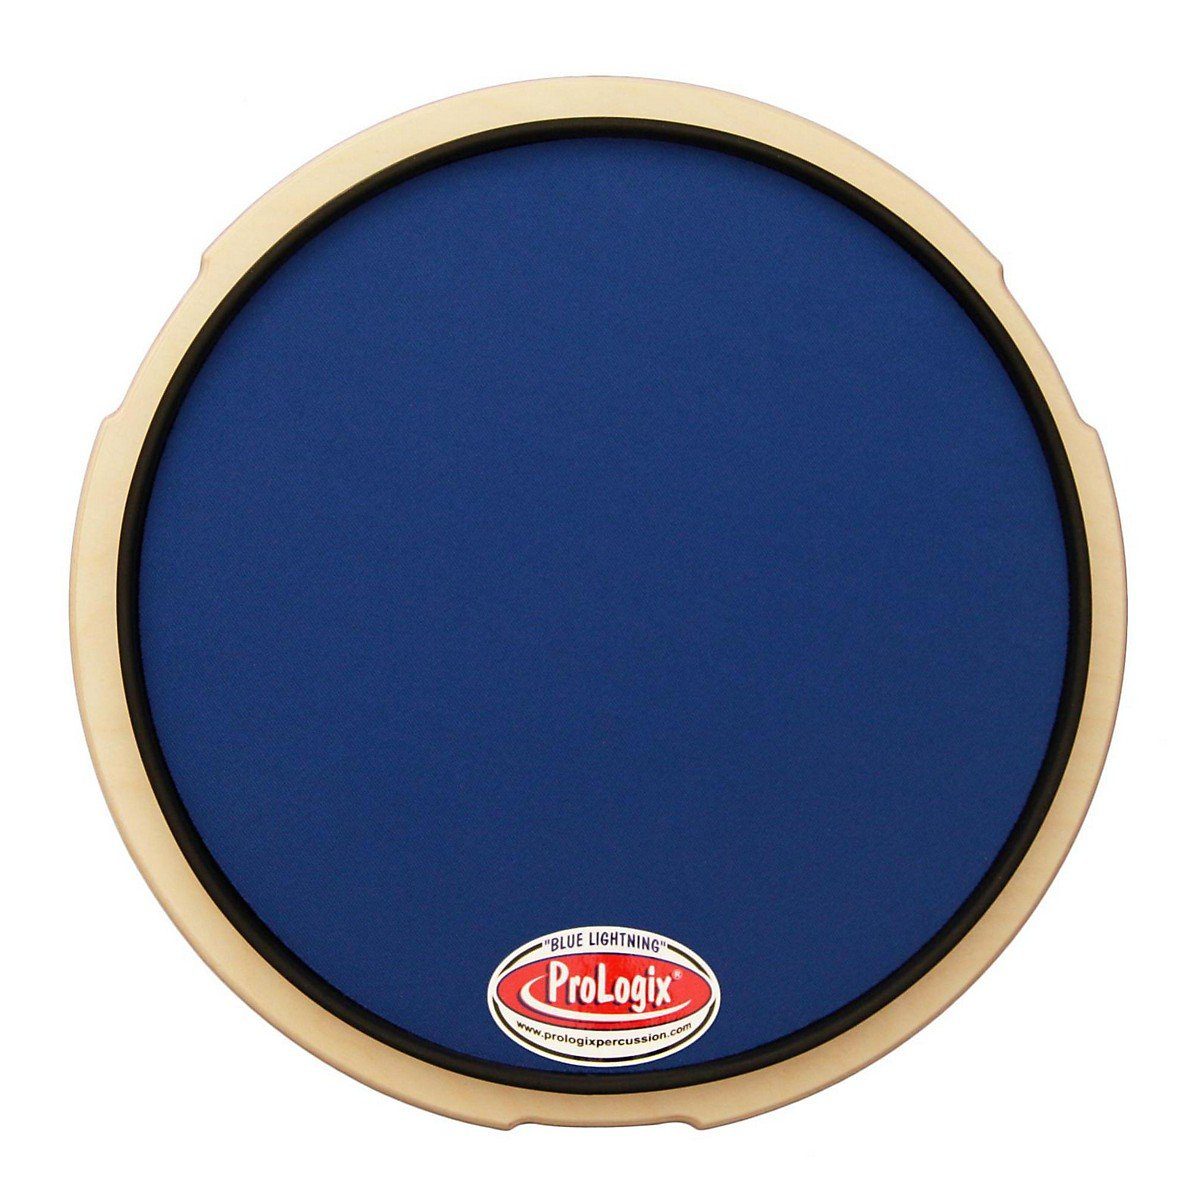 Prologix Percussion Blue Lightning Practice Pad - 10